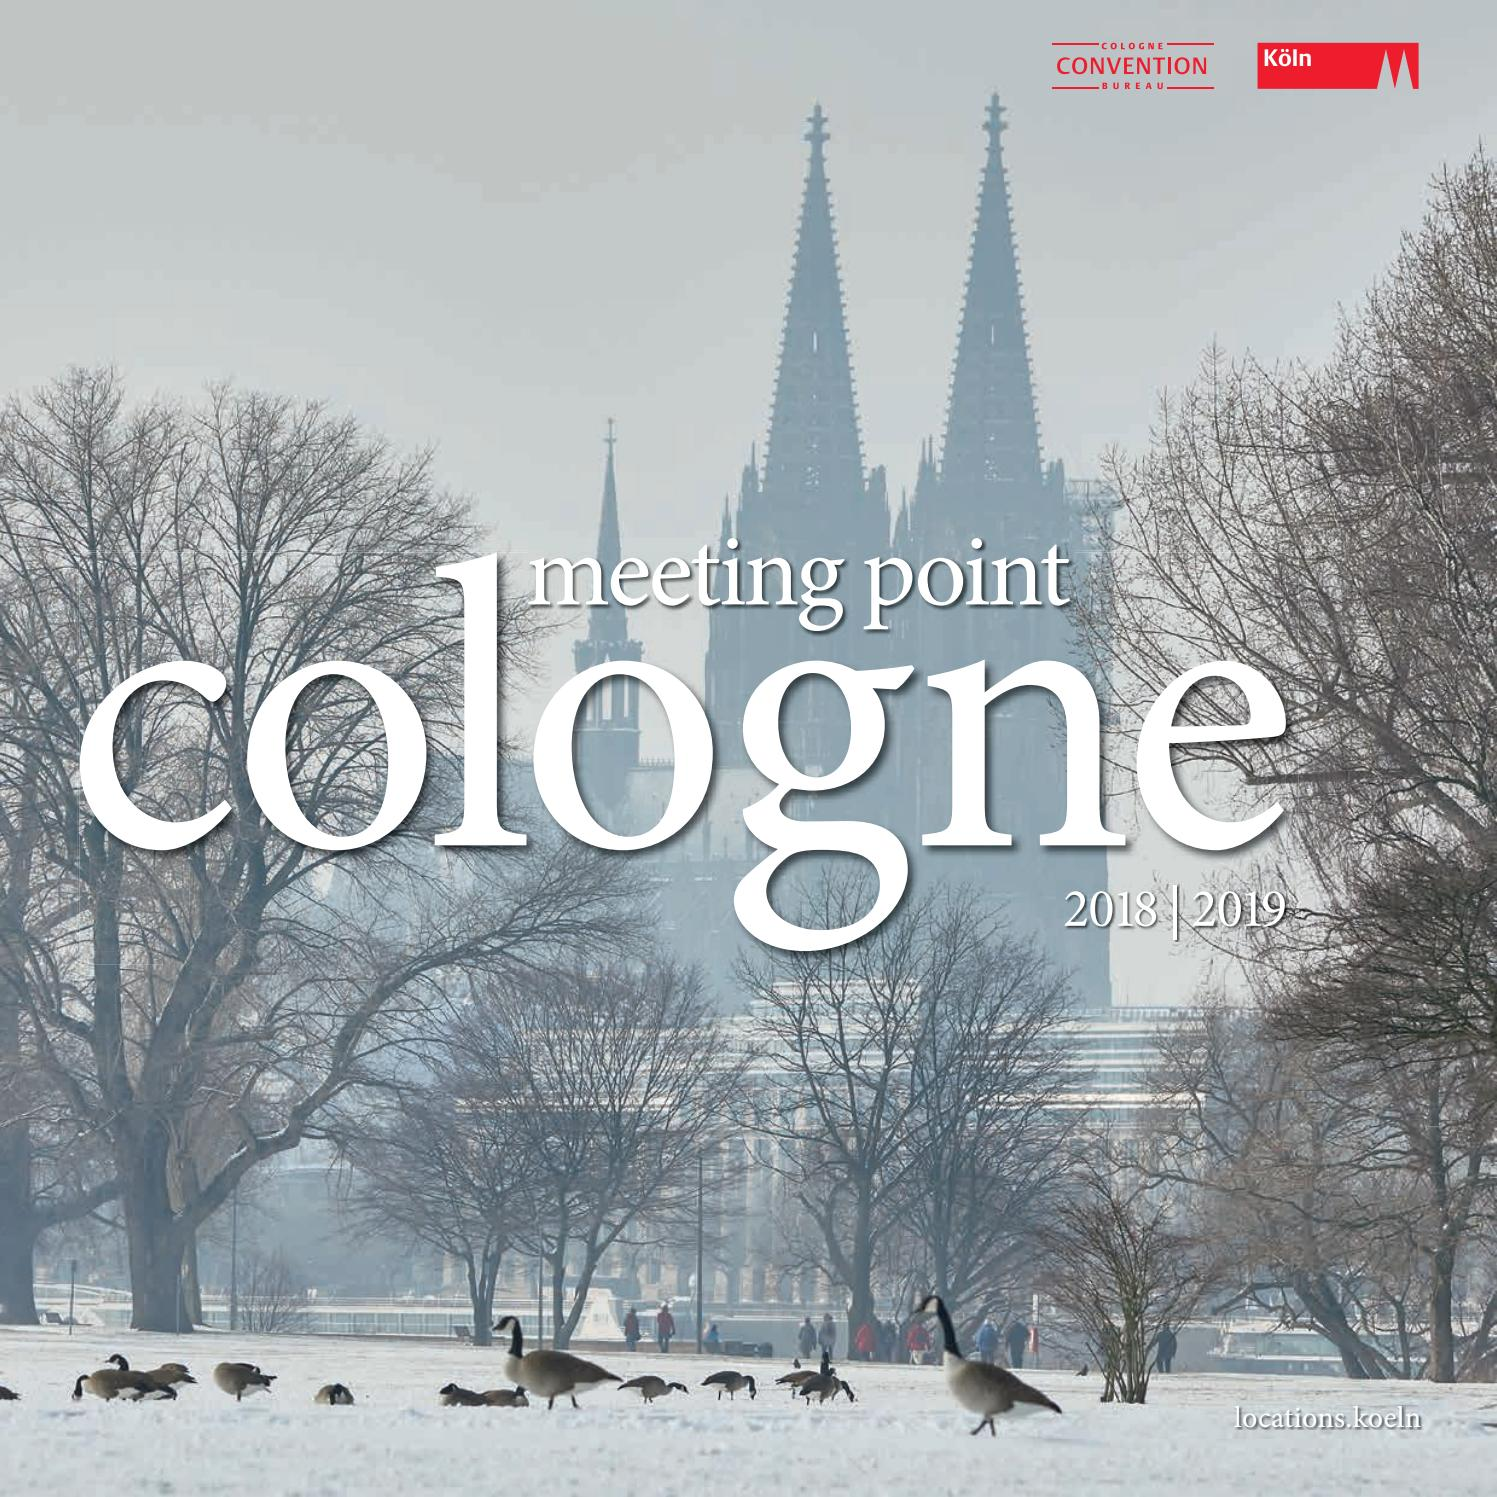 Meeting Point Cologne 2018/2019 By KölnTourismus GmbH   Issuu